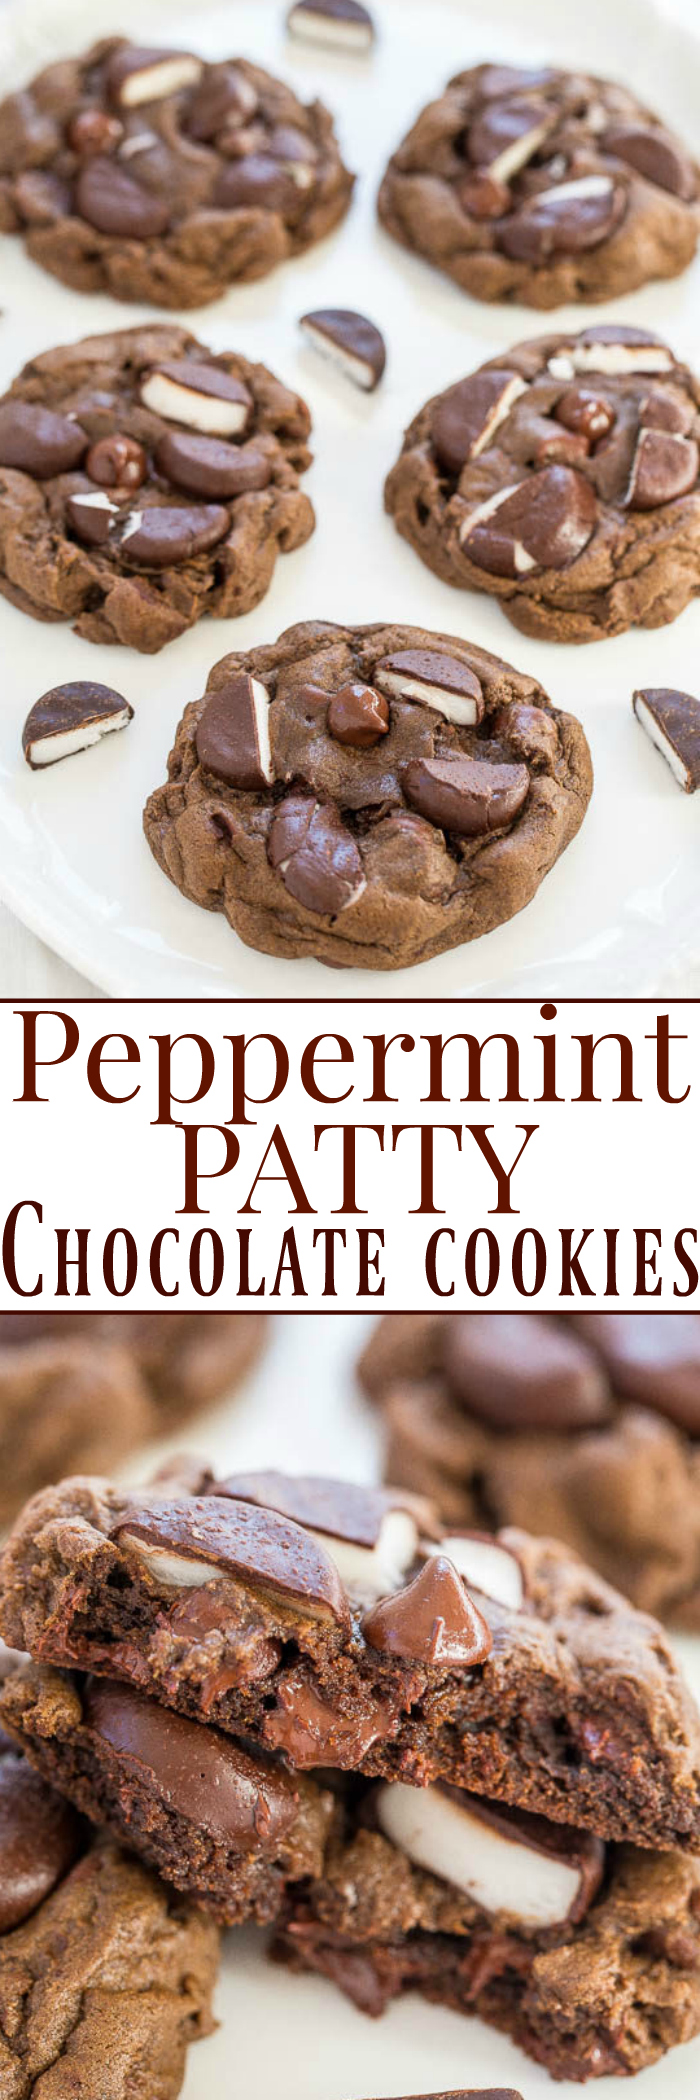 Peppermint Patty Chocolate Cookies - Very chocolaty, ultra FUDGY, and loaded with chocolate chips and peppermint patties!! If you love mint + chocolate, you'll adore these easy, soft, and decadent chocolate bombs!!